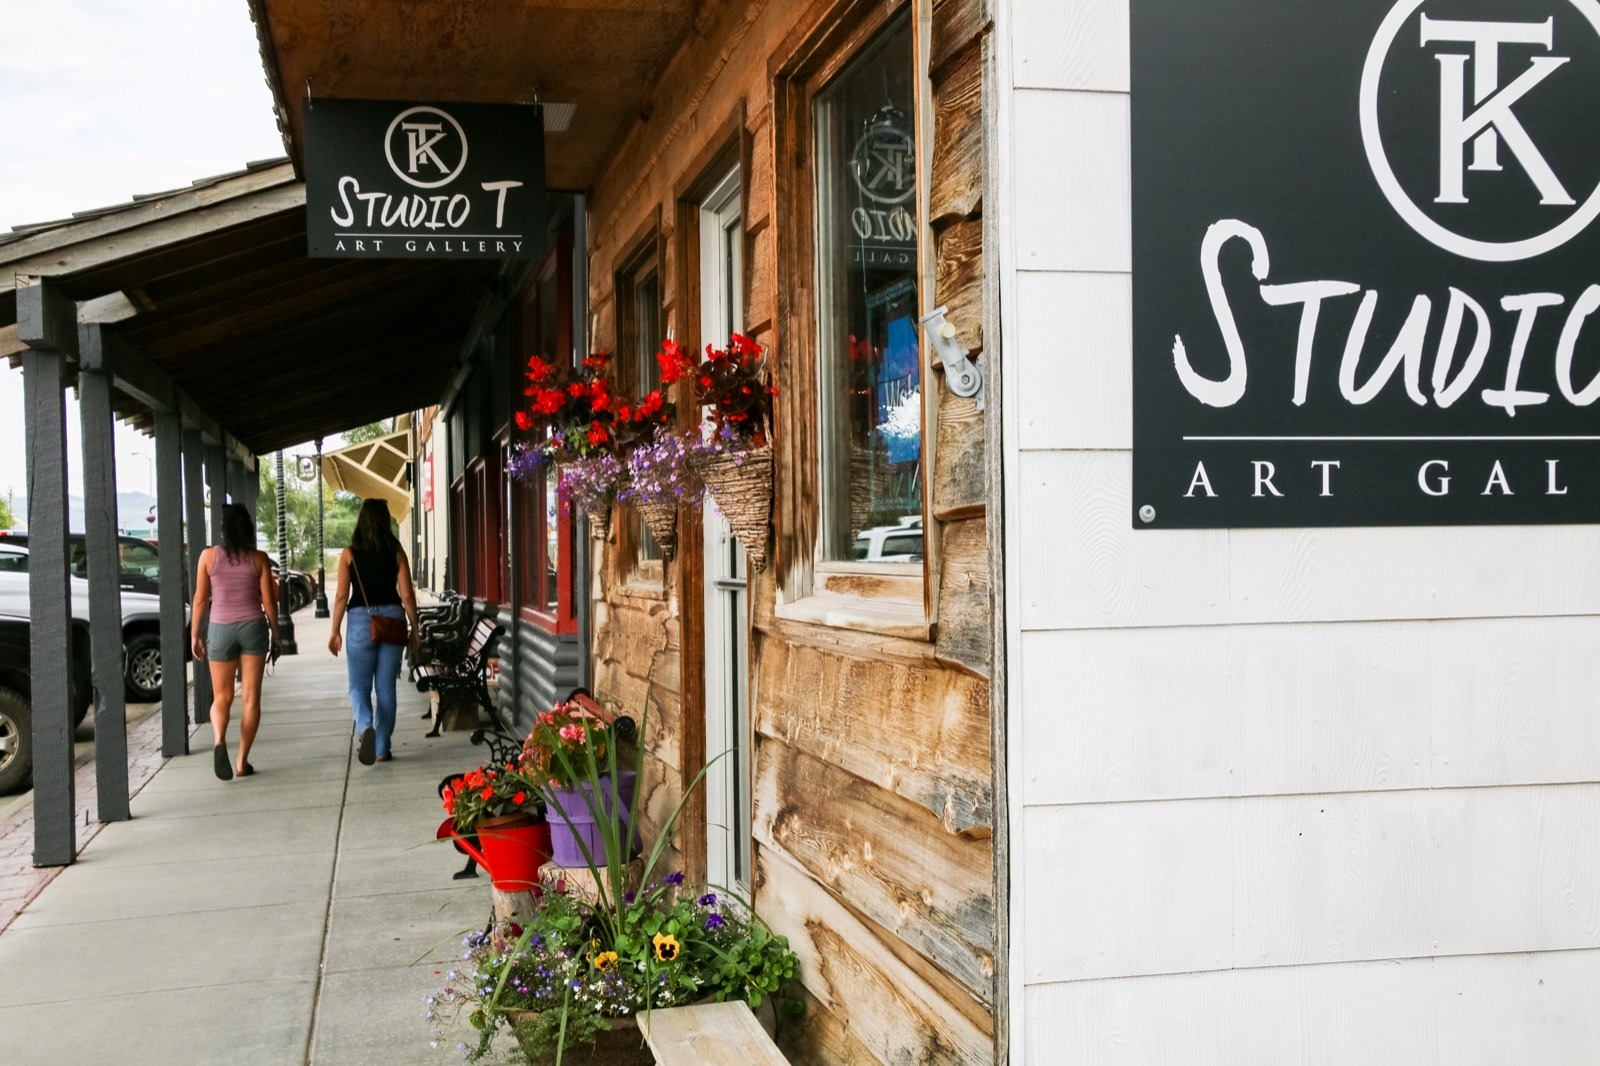 Our escape to Saratoga included adorable downtown shopping